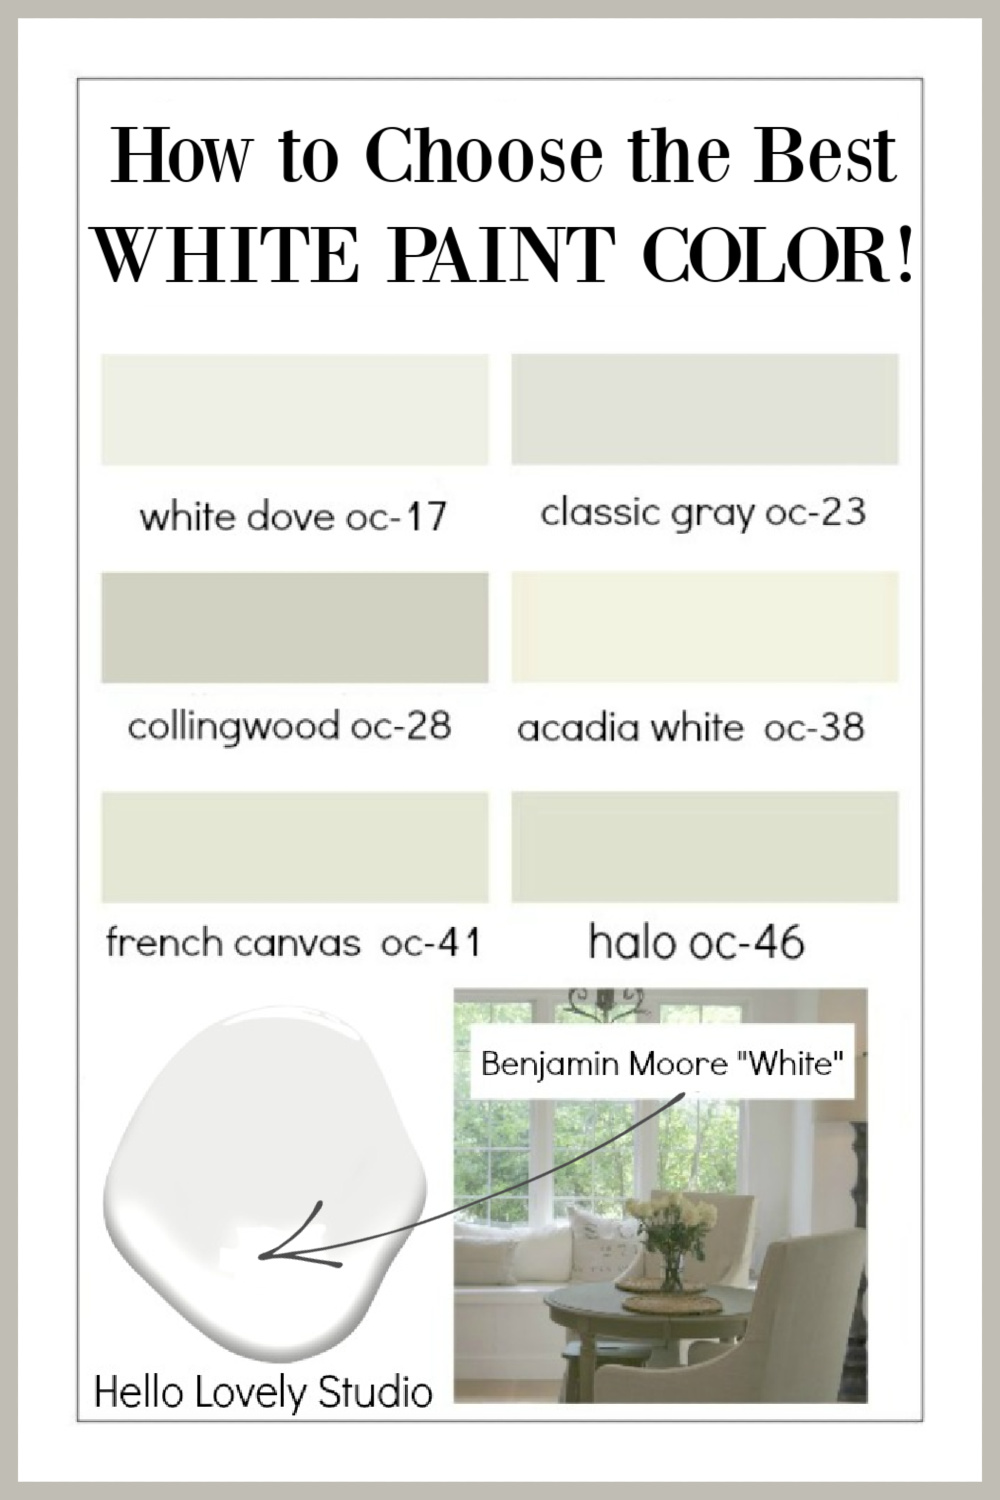 How to Choose the Right White Paint Color Every Time - come get the help on Hello Lovely! #paintcolors #whitepaint #interiordesign